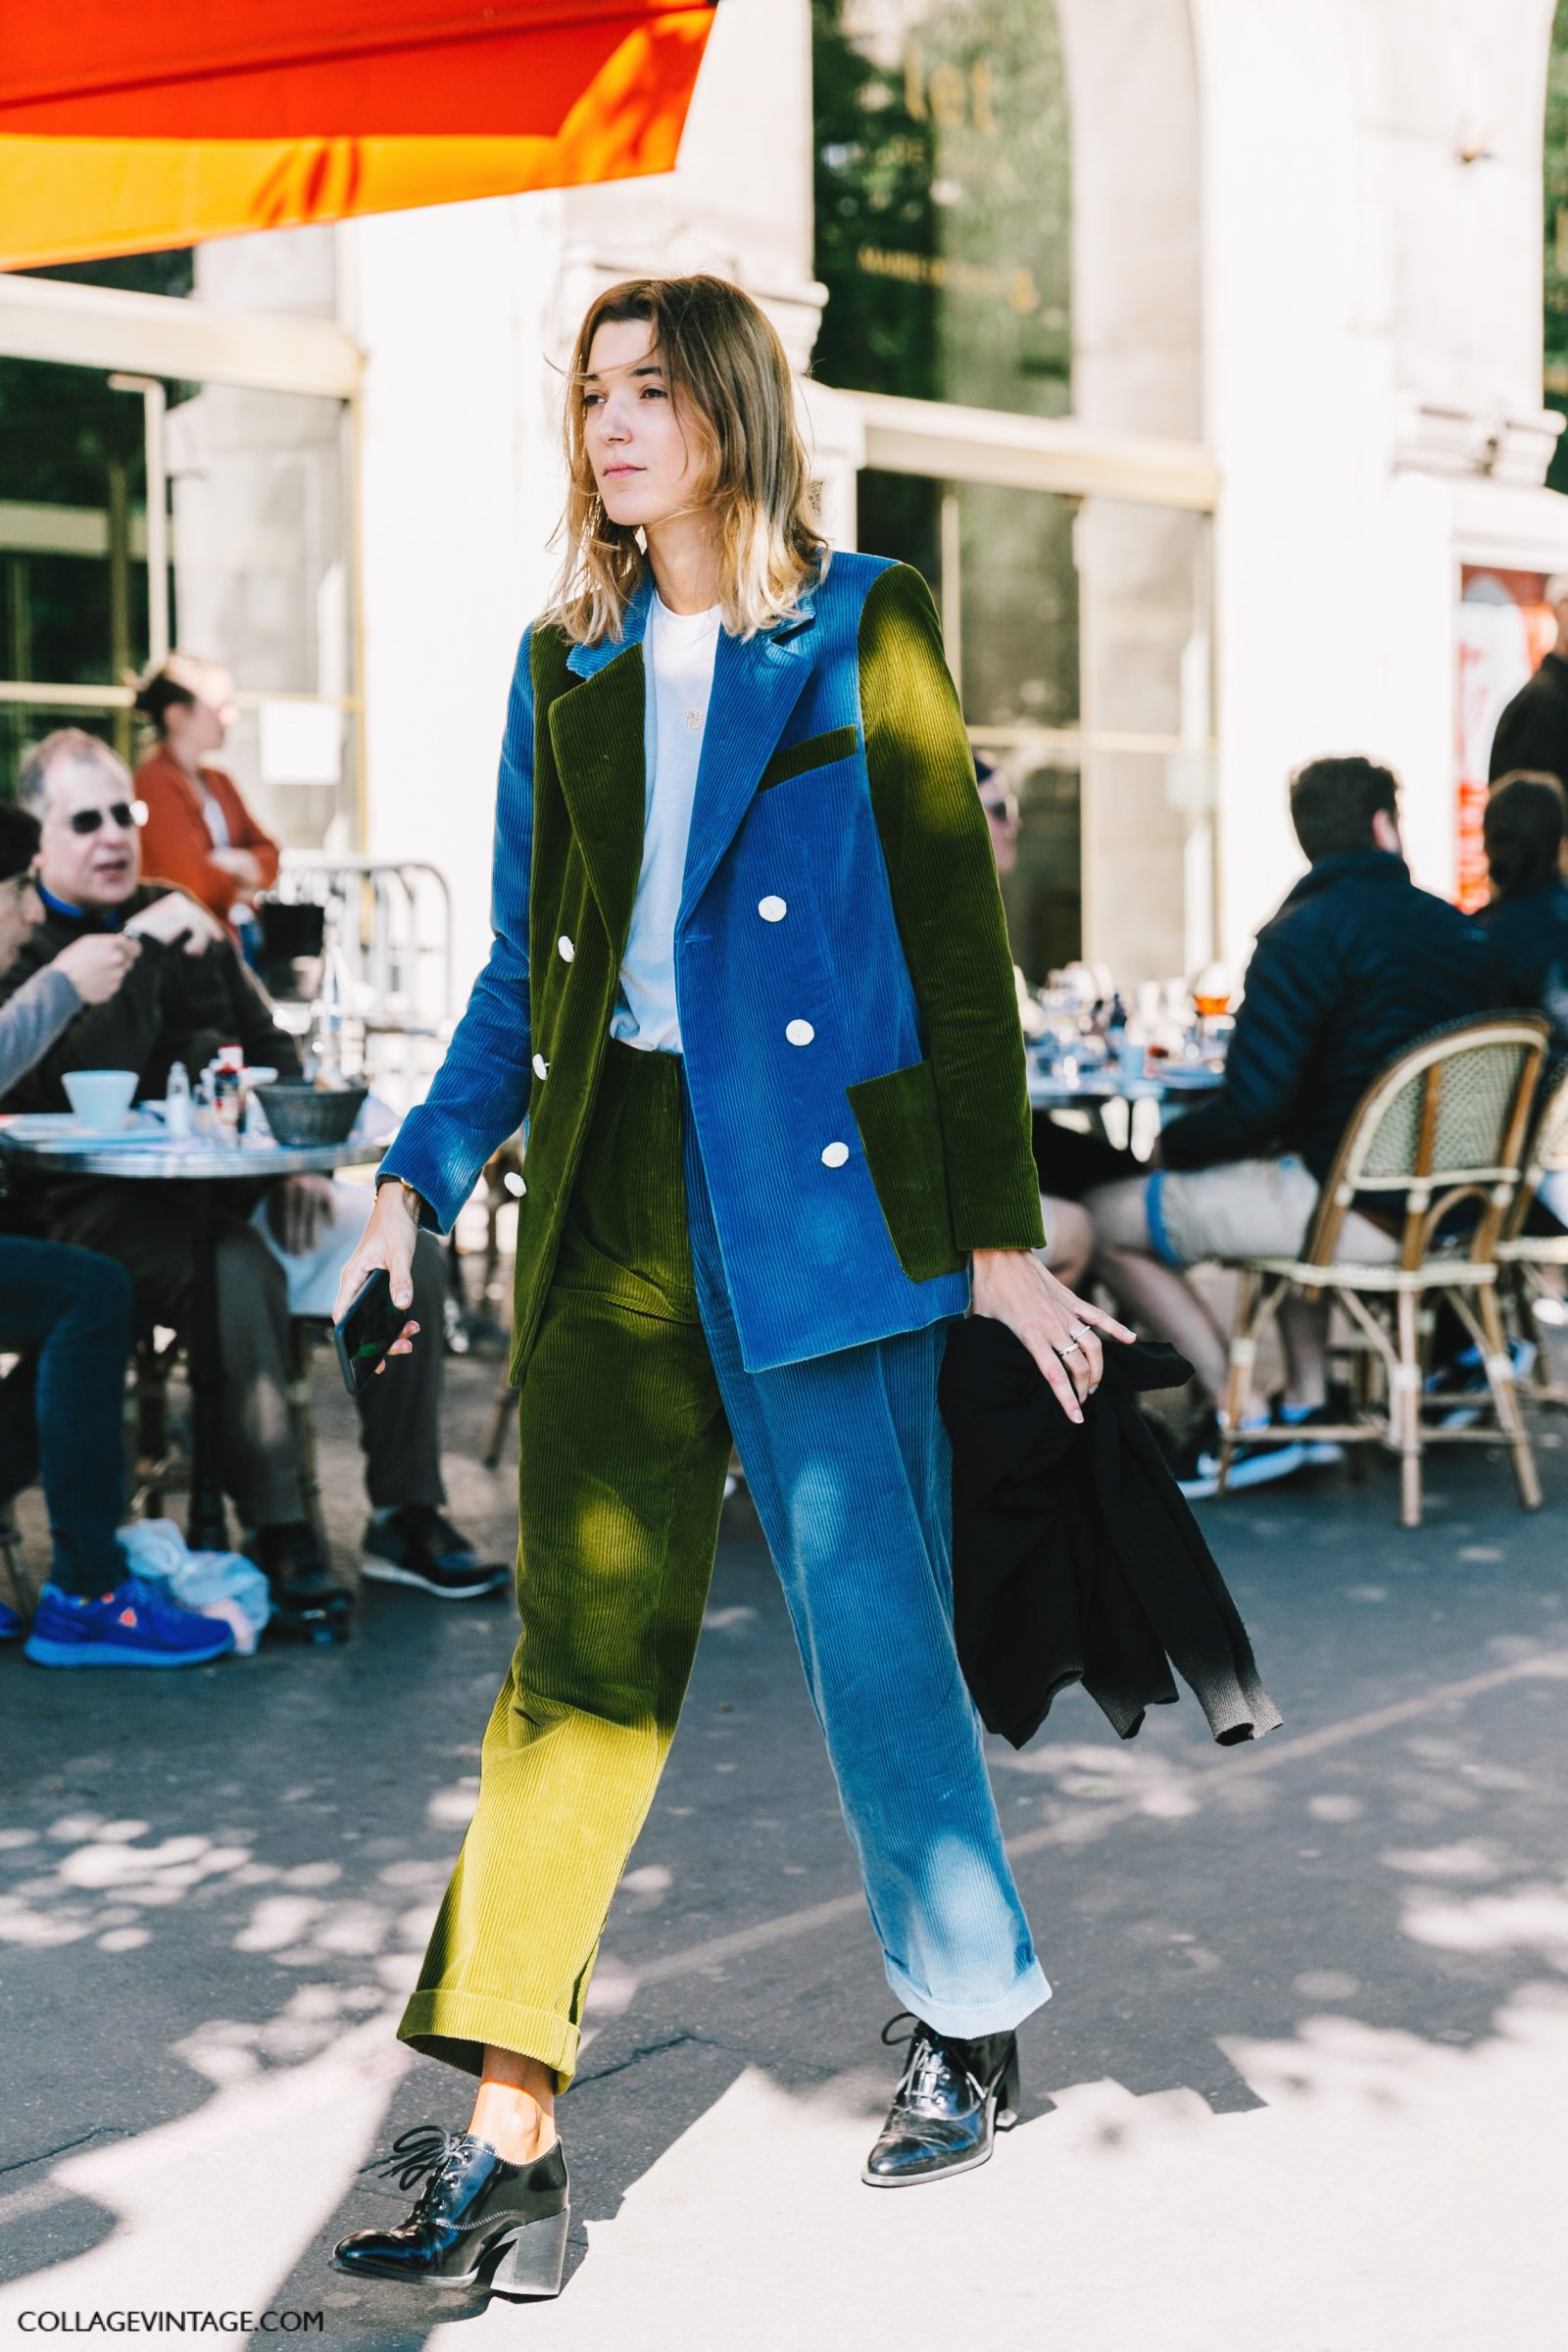 pfw-paris_fashion_week_ss17-street_style-outfits-collage_vintage-chanel-ellery-121